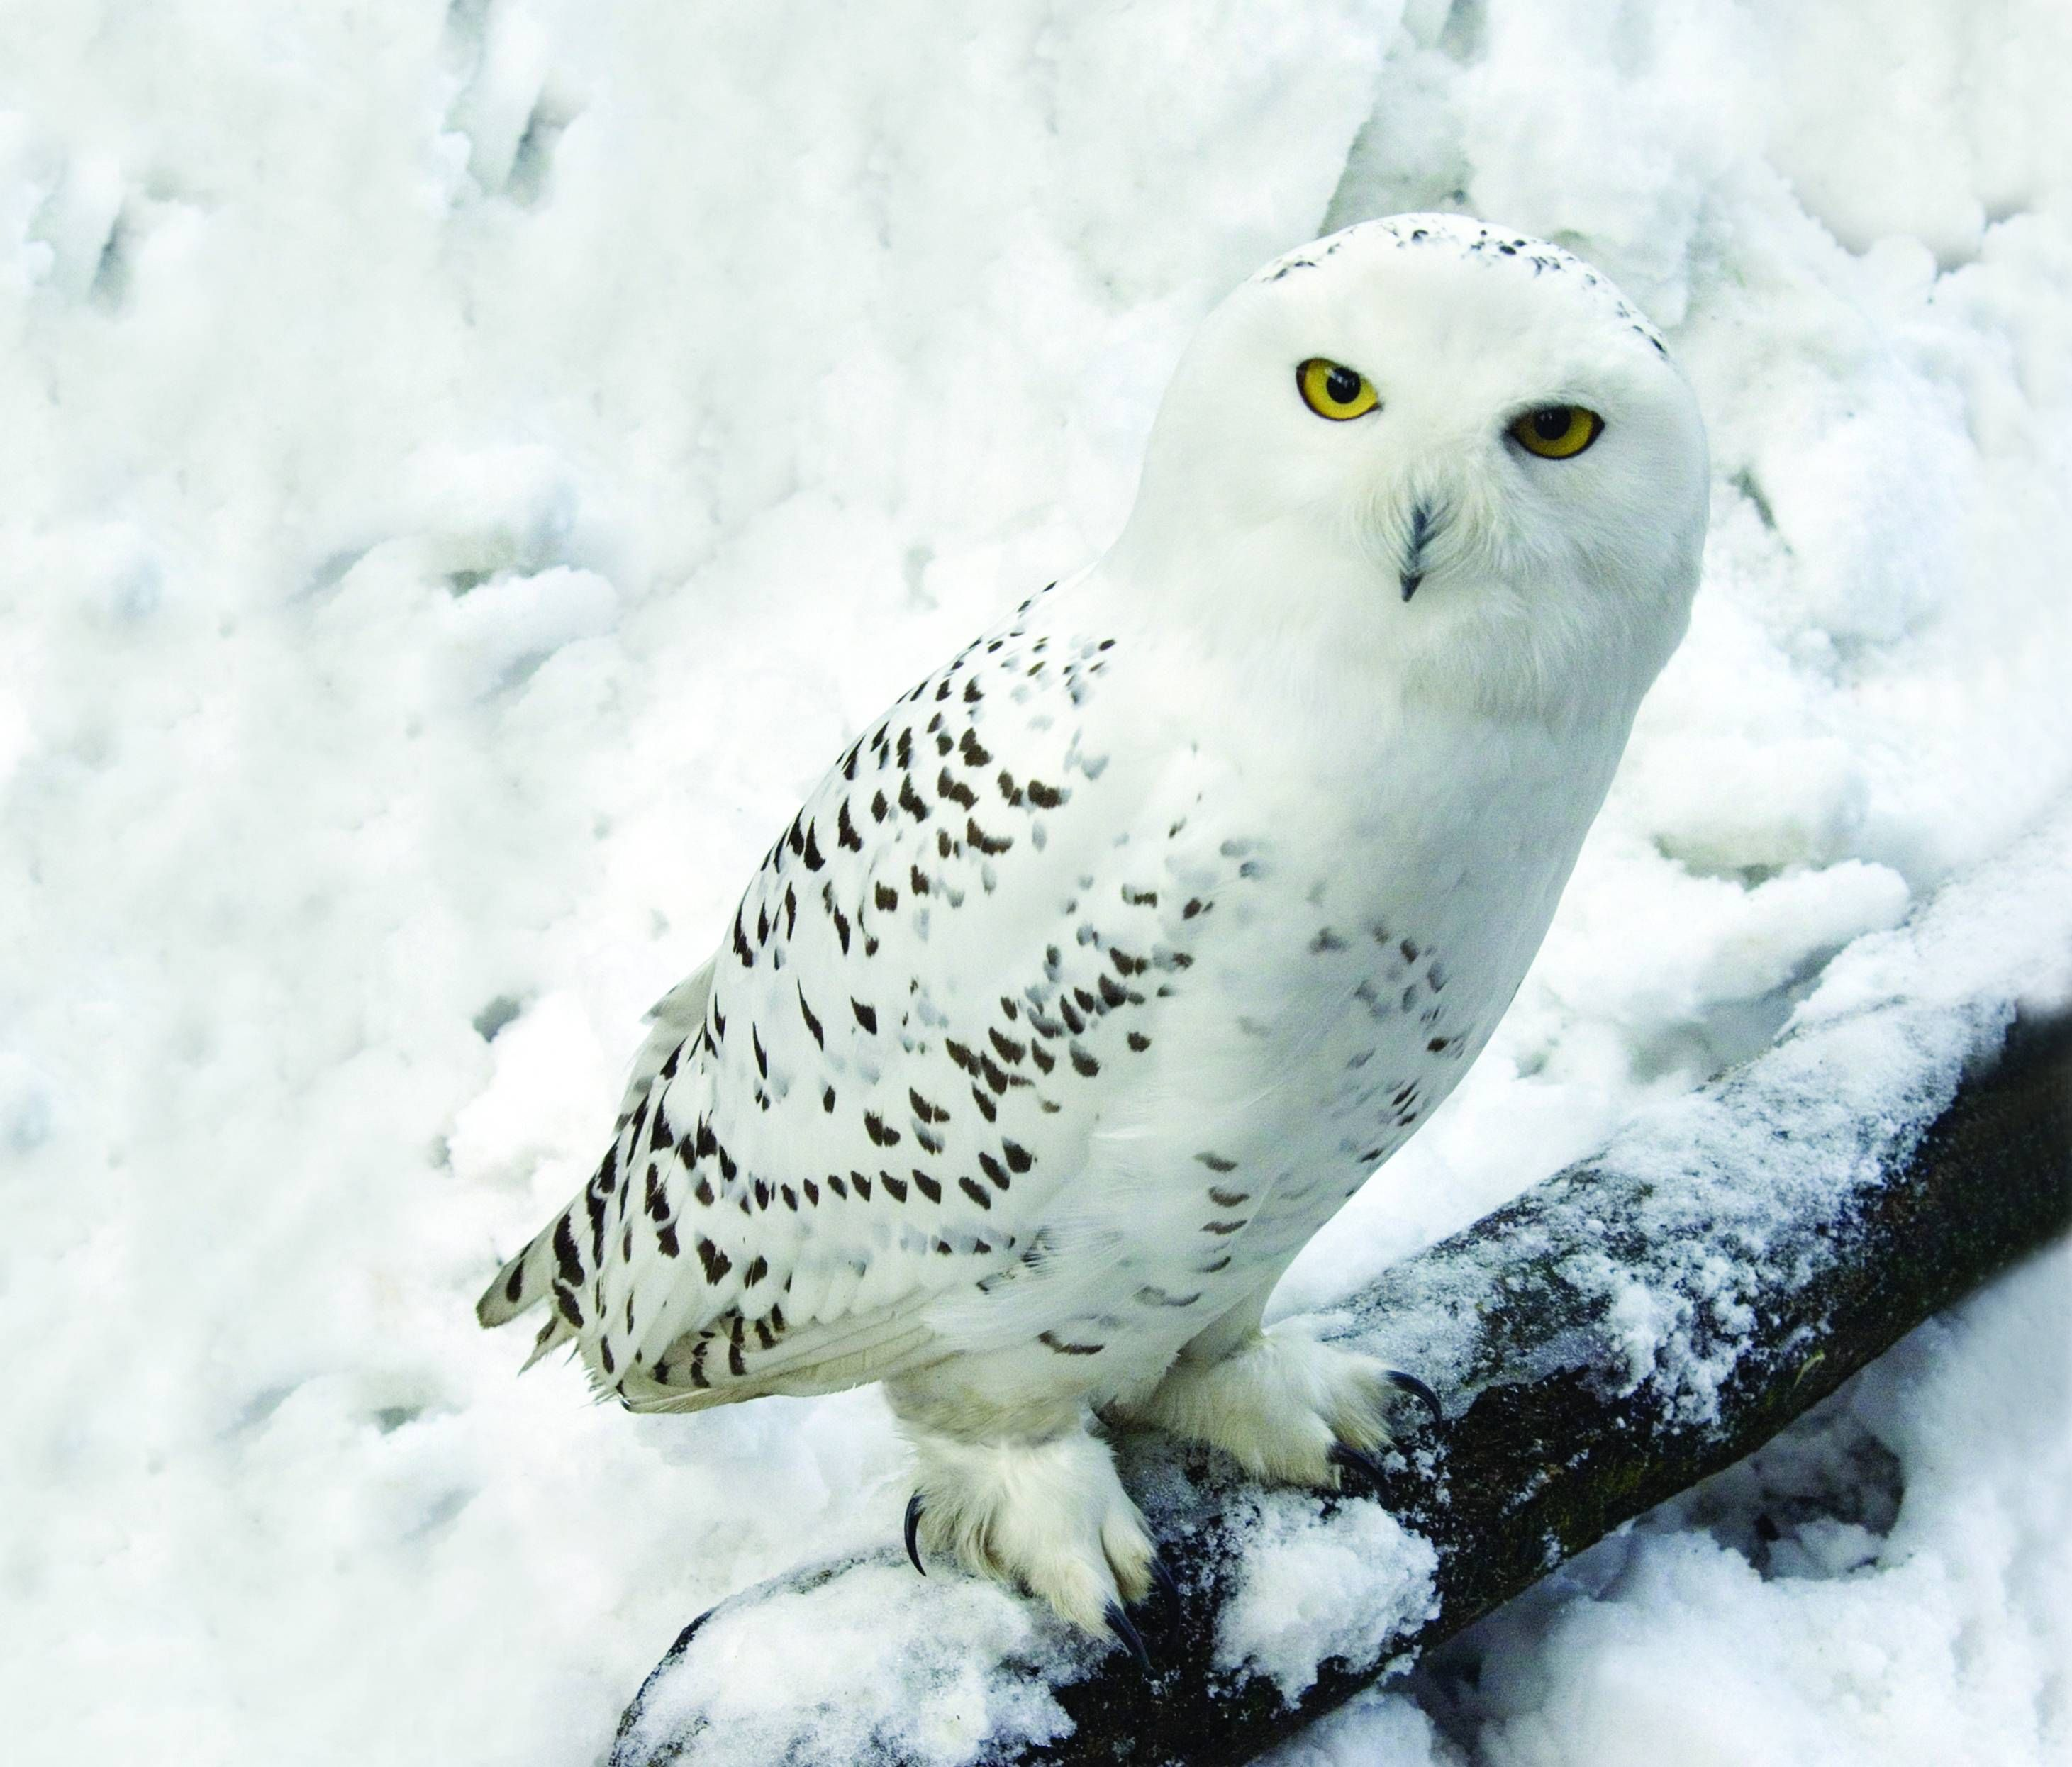 Snowy Owl Hd Photo Google Search Snowy Owl Owl